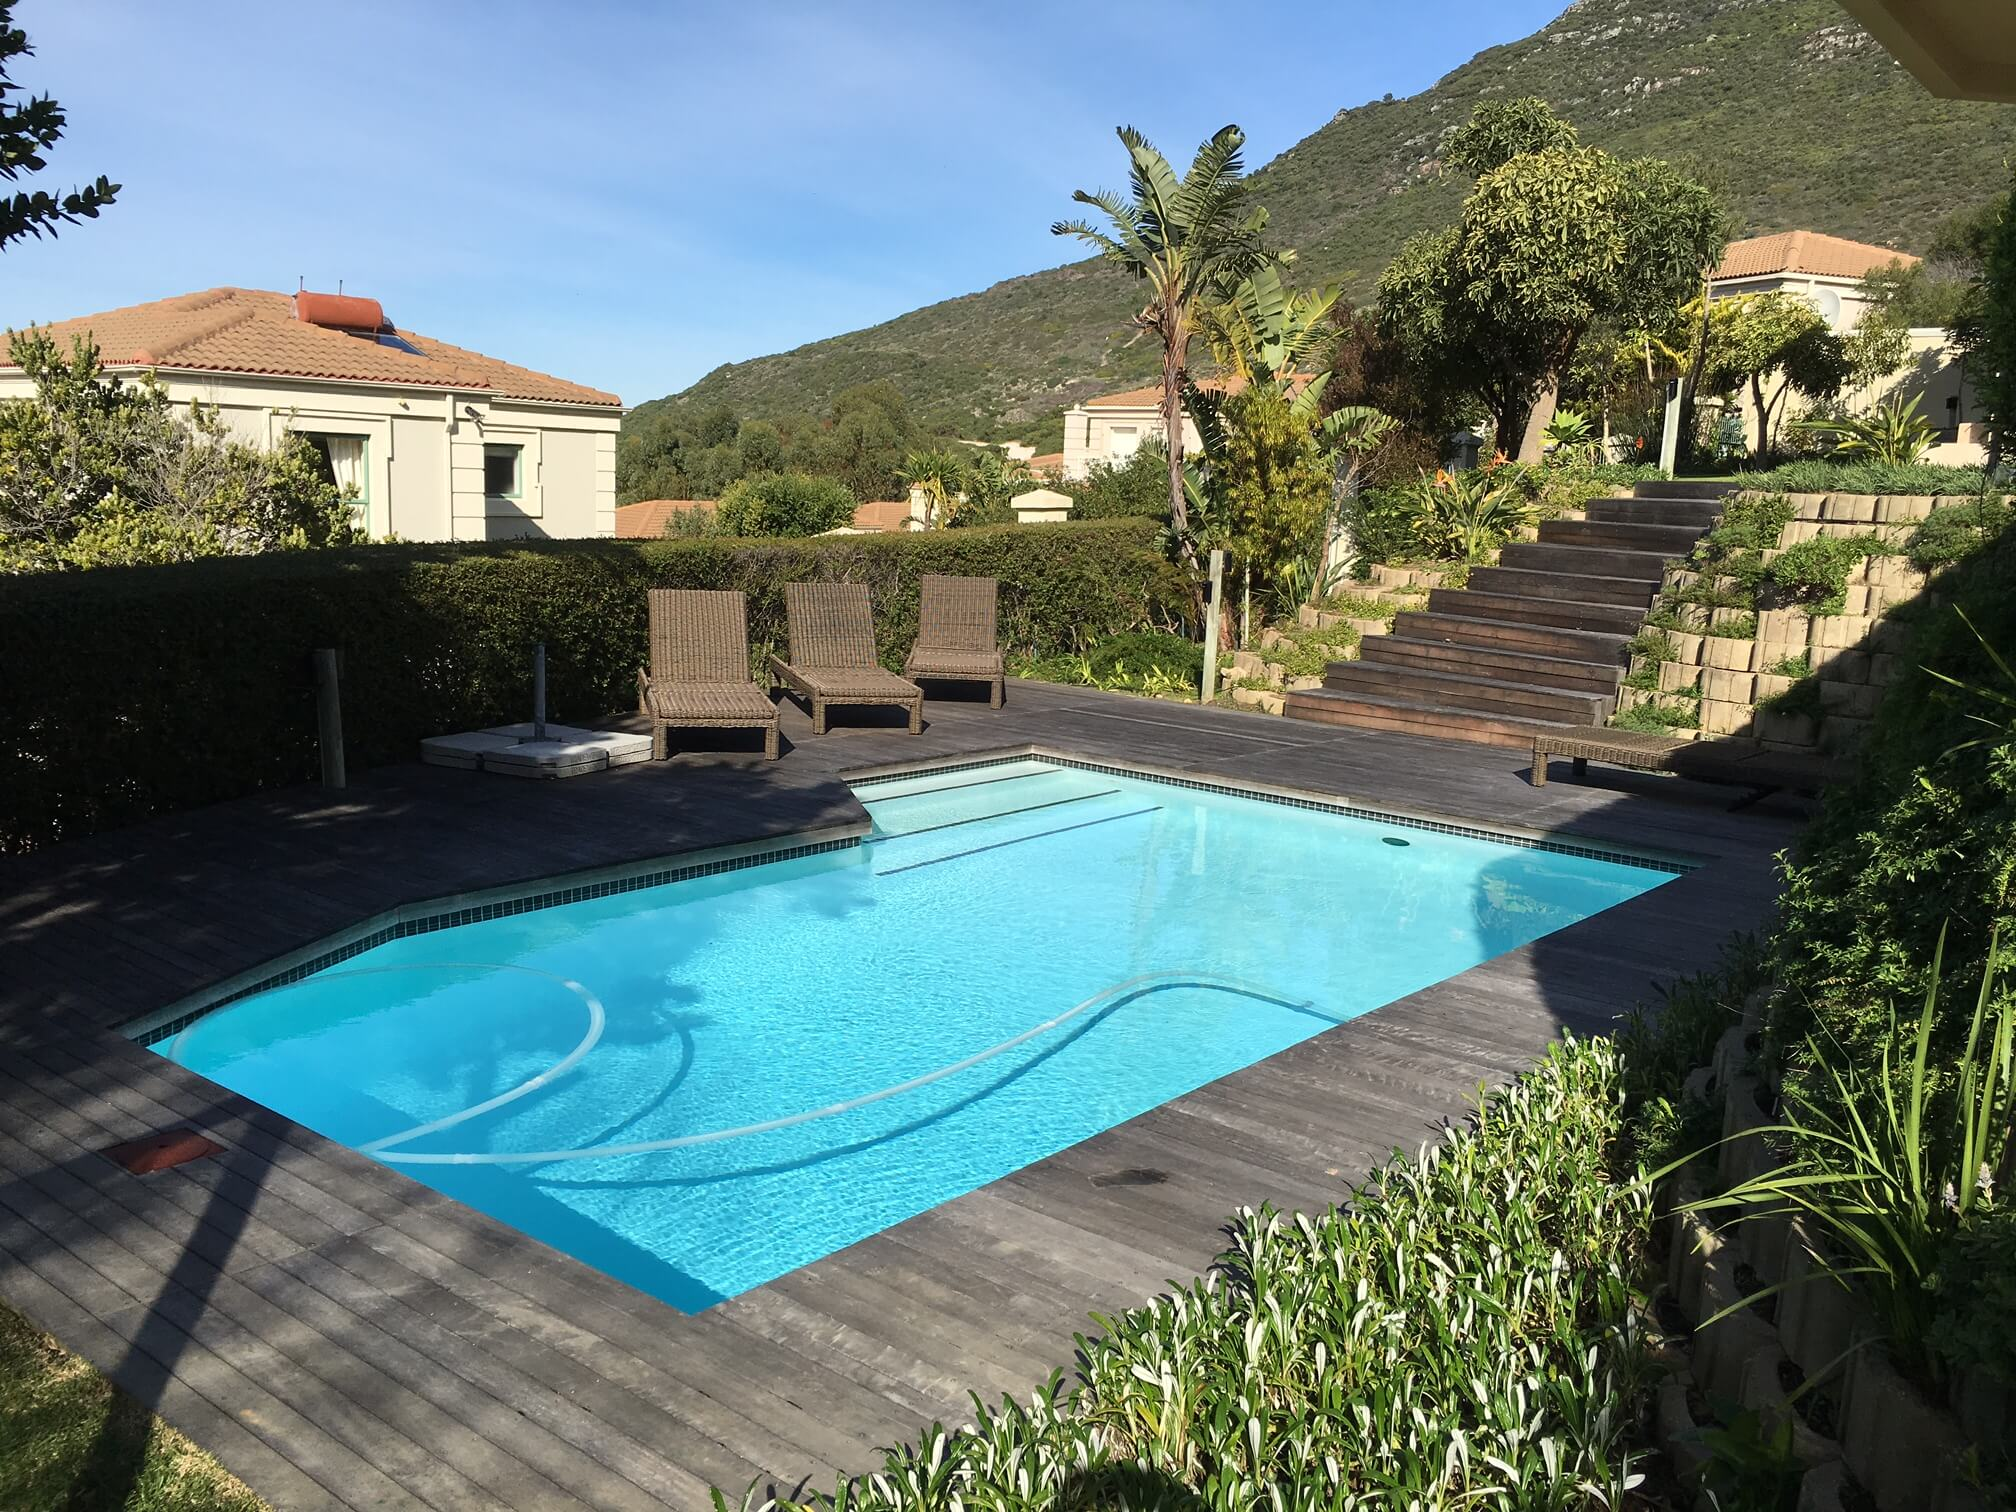 Fibreglass swimming pool linings sundance pools for Swimming pool covers south africa